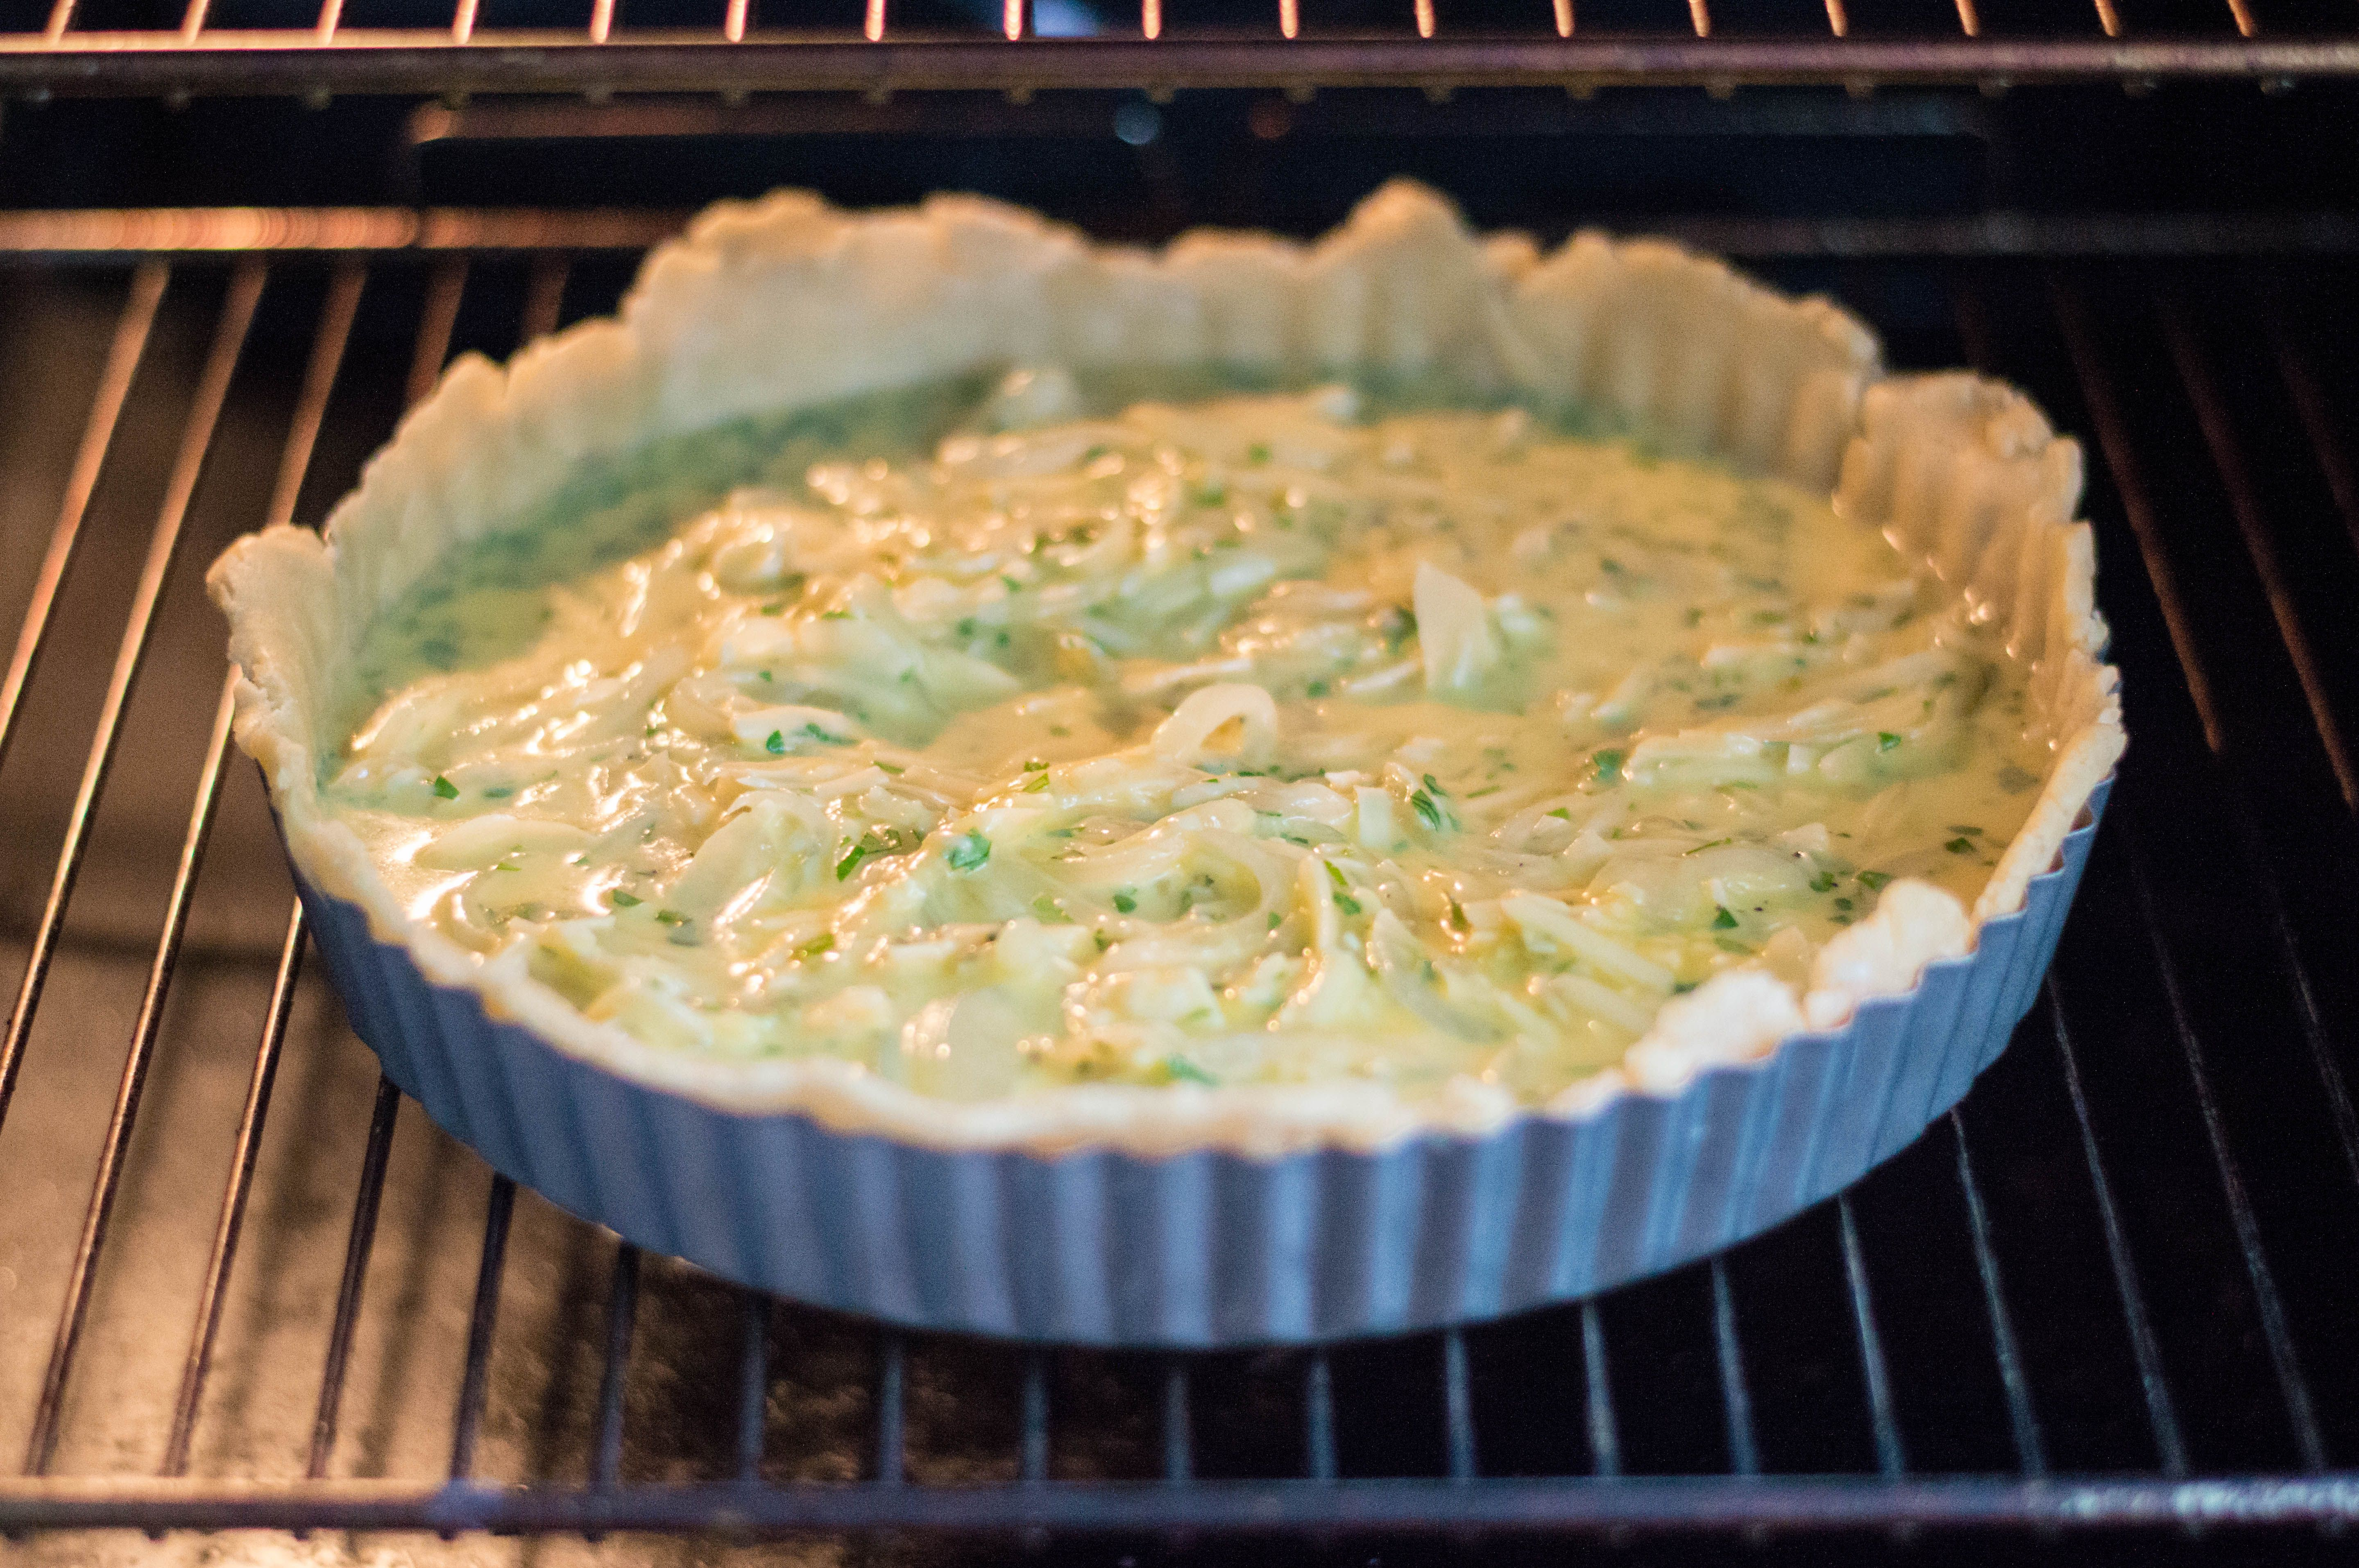 Cheese and onion flan in the oven